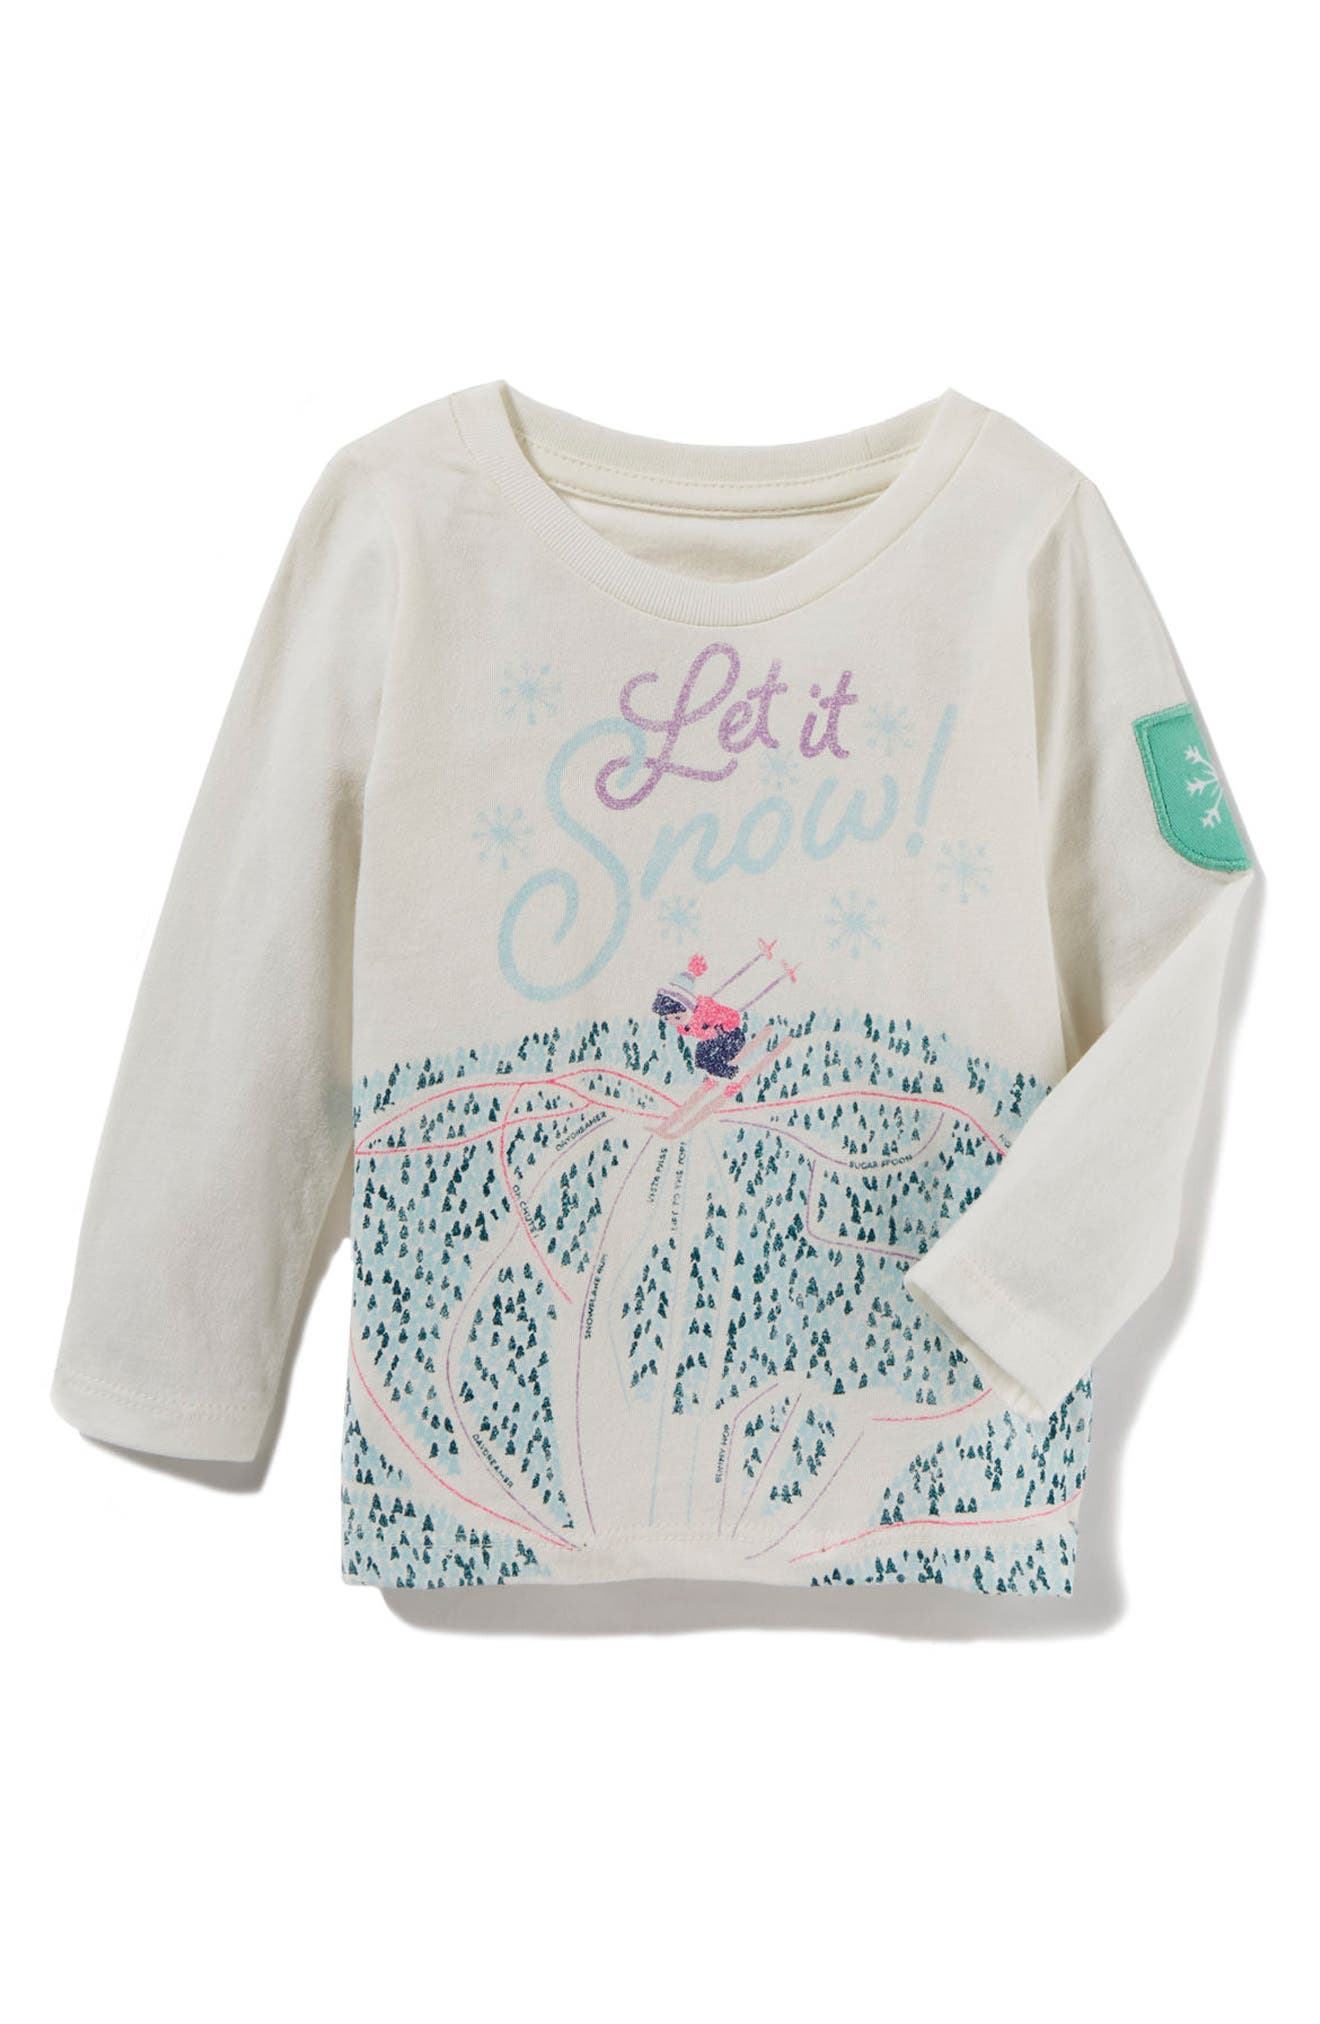 Alternate Image 1 Selected - Peek Let It Snow Graphic Tee (Baby Girls)